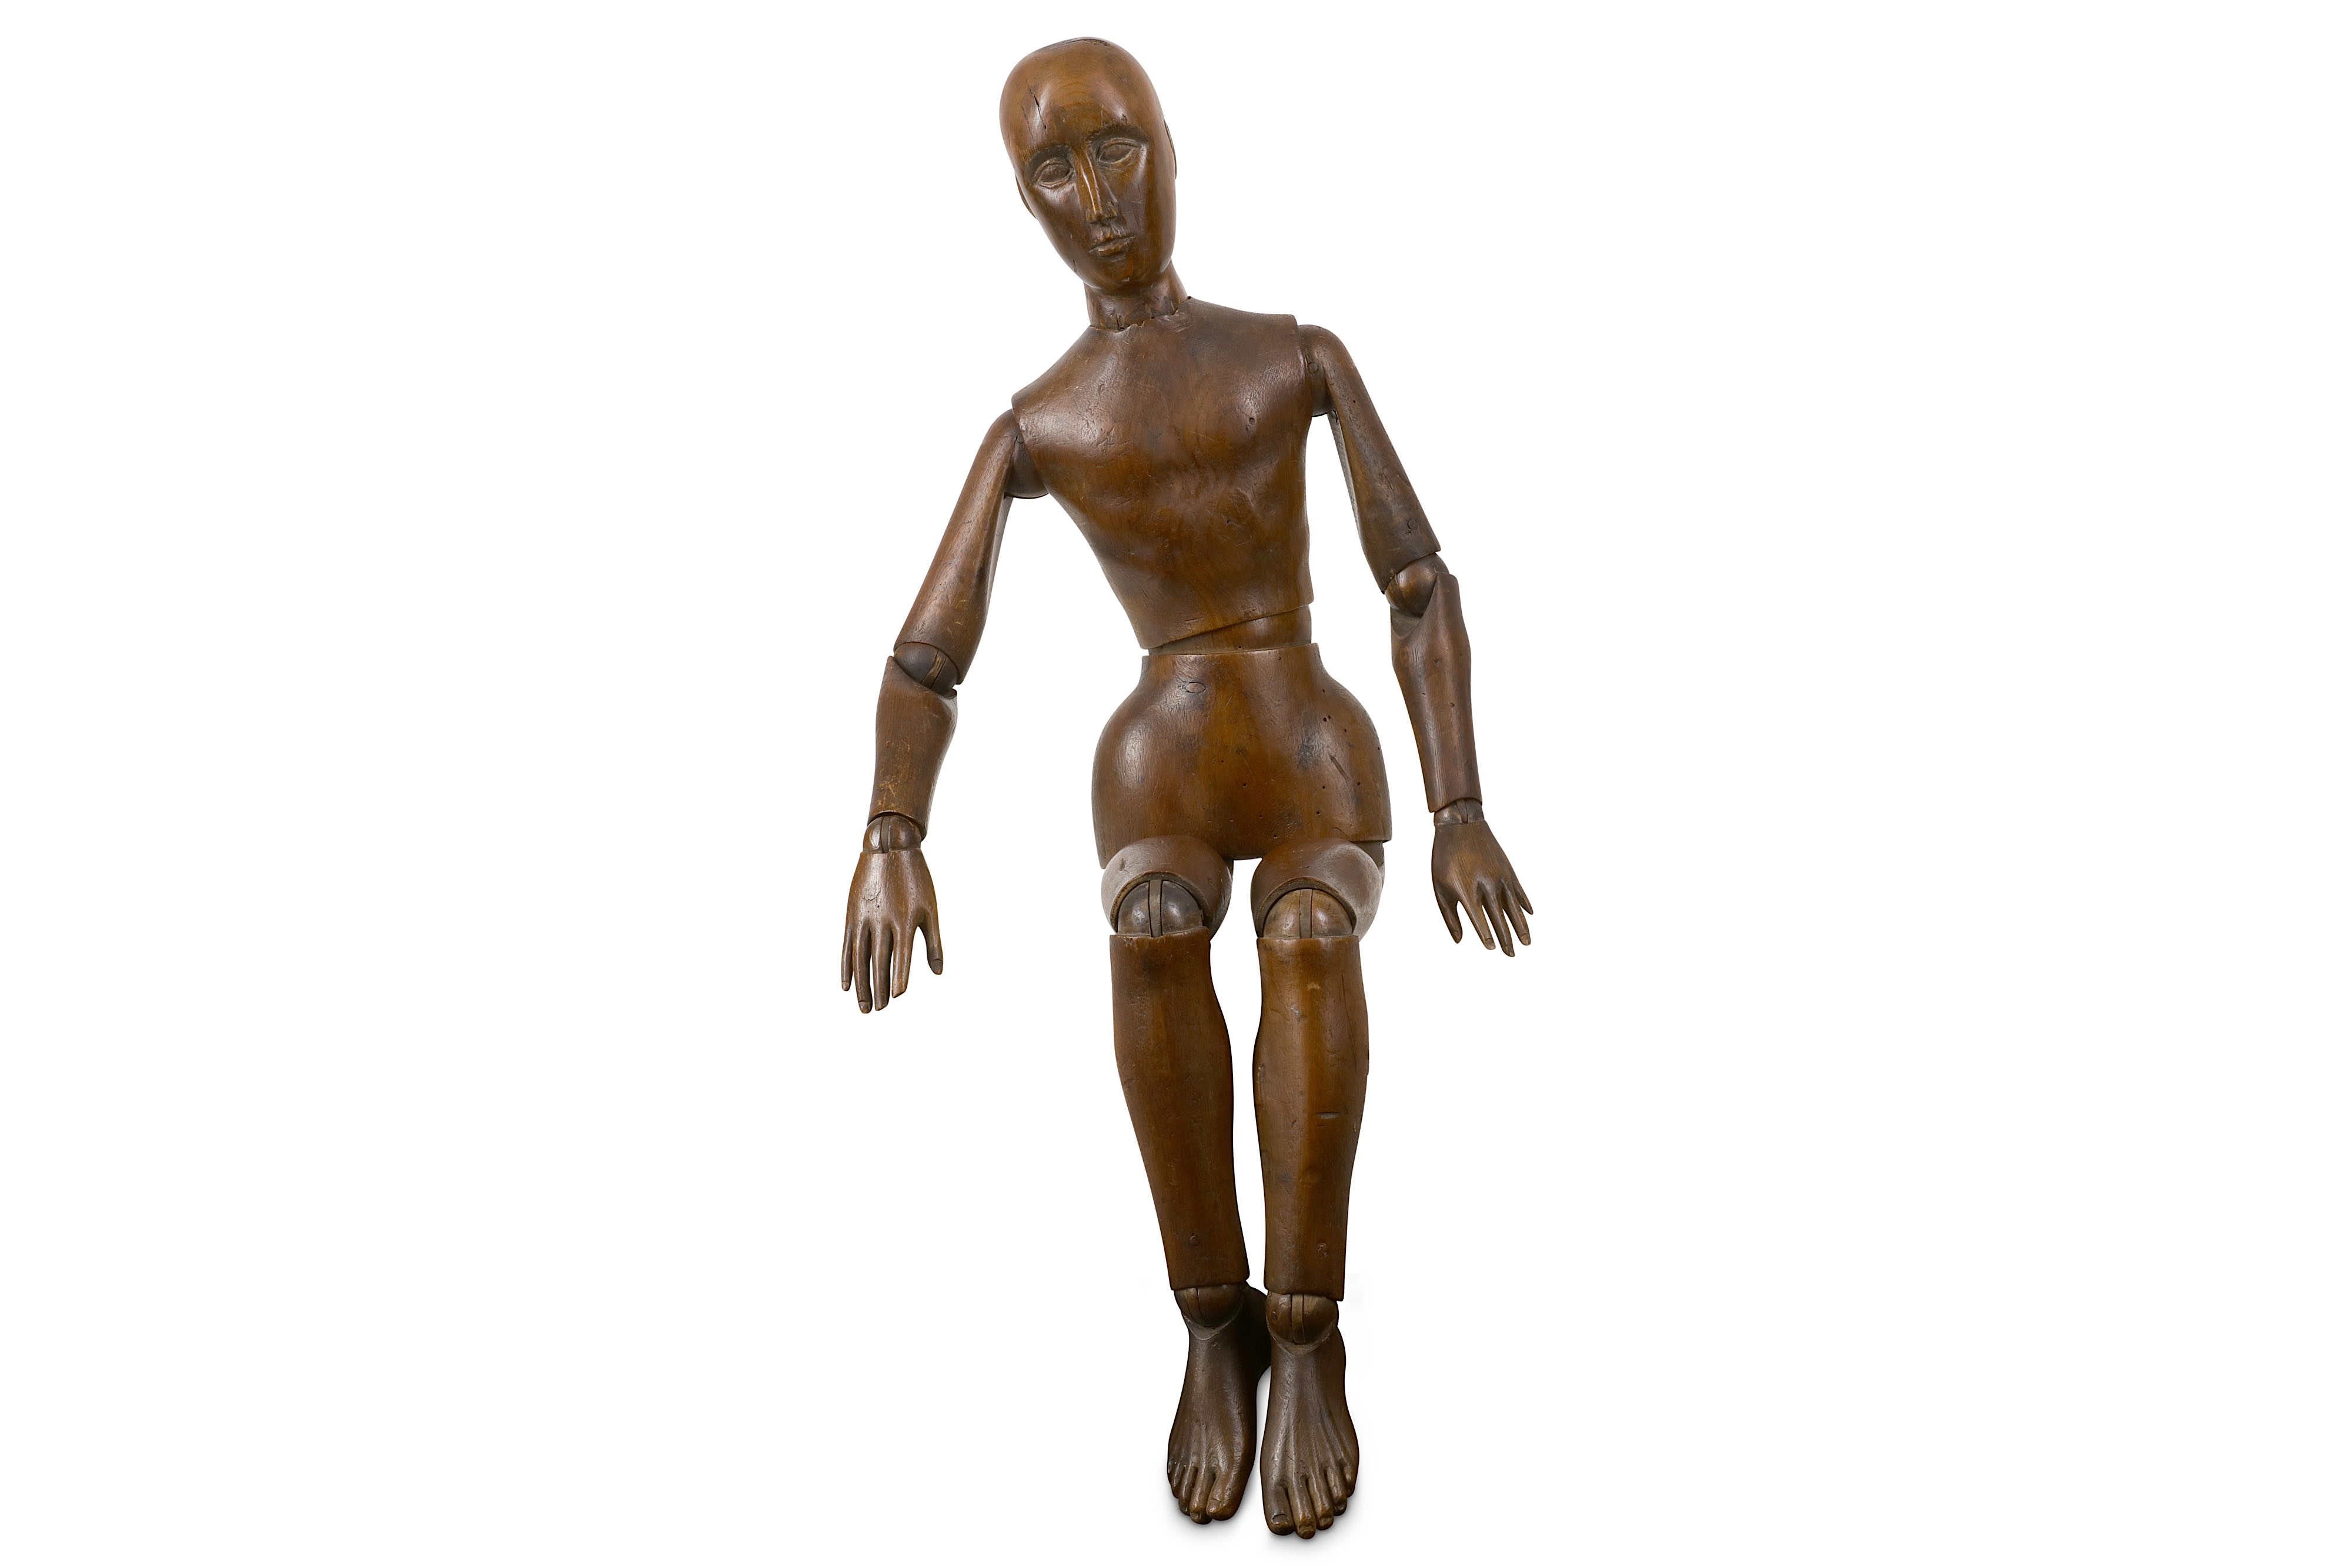 AN EARLY 20TH CENTURY CARVED AND STAINED WOOD LAY FIGURE OR ARTIST'S MANNEQUIN